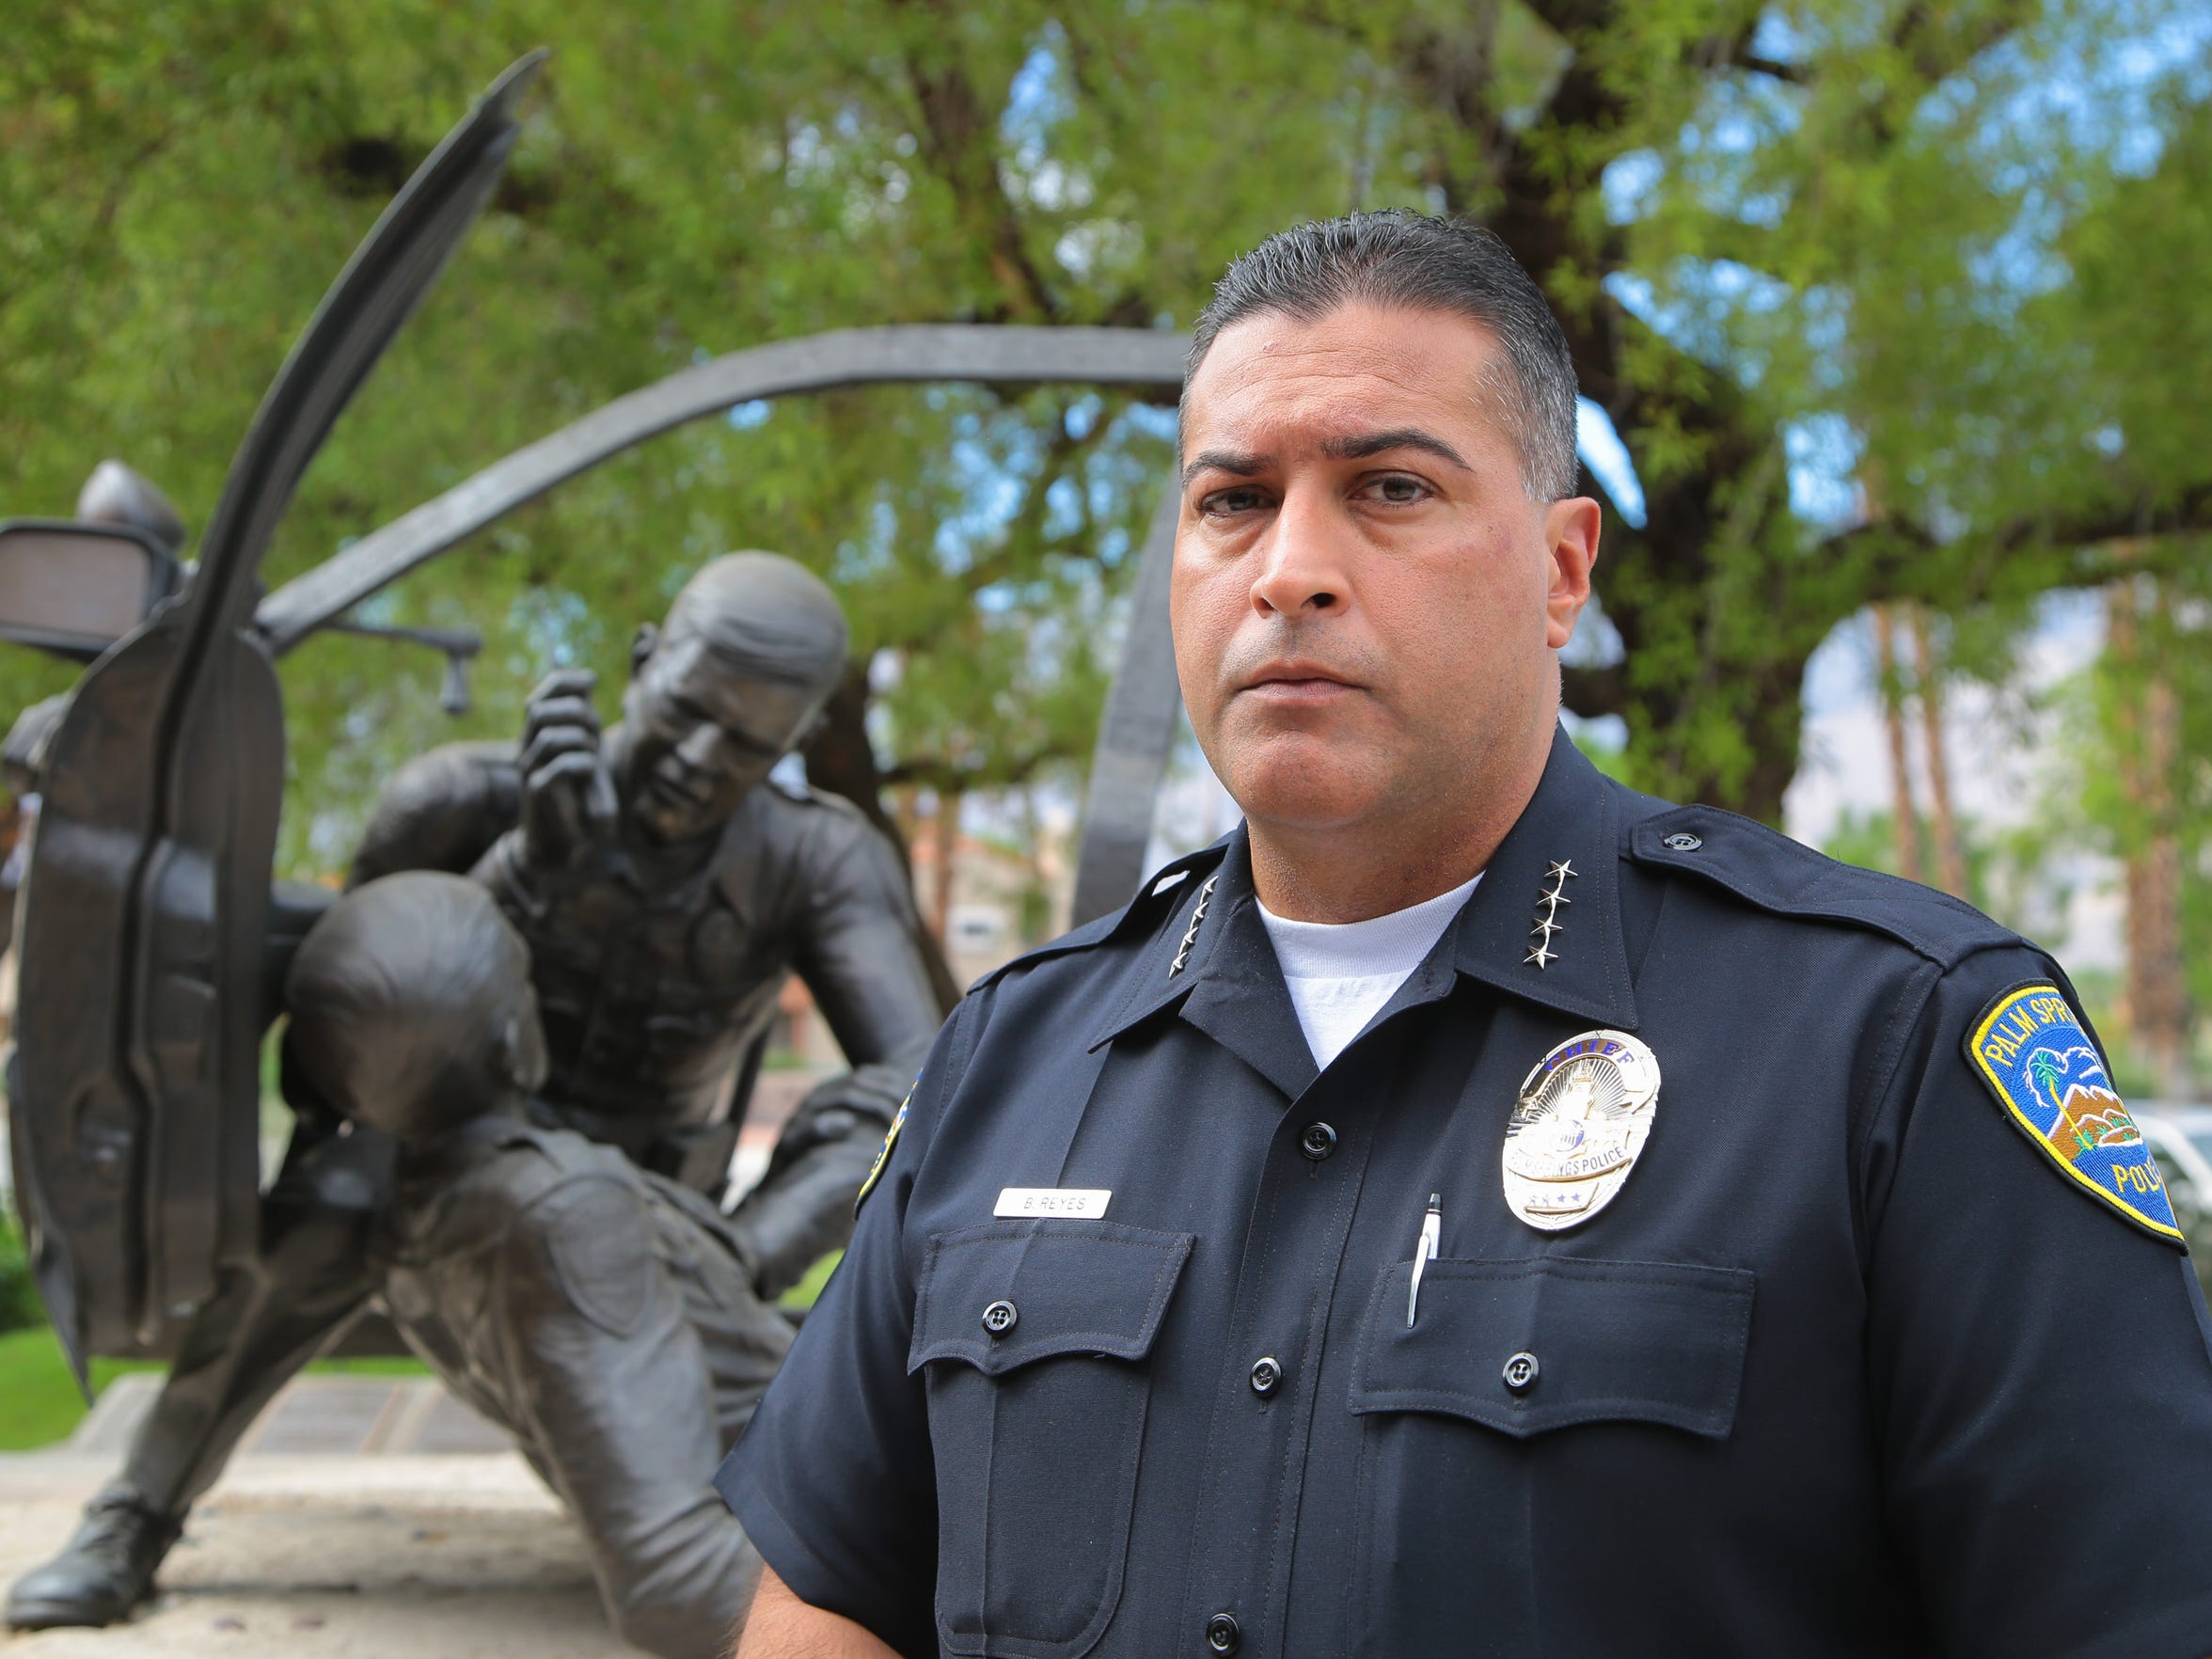 Police Chief Bryan Reyes is photographed next to the